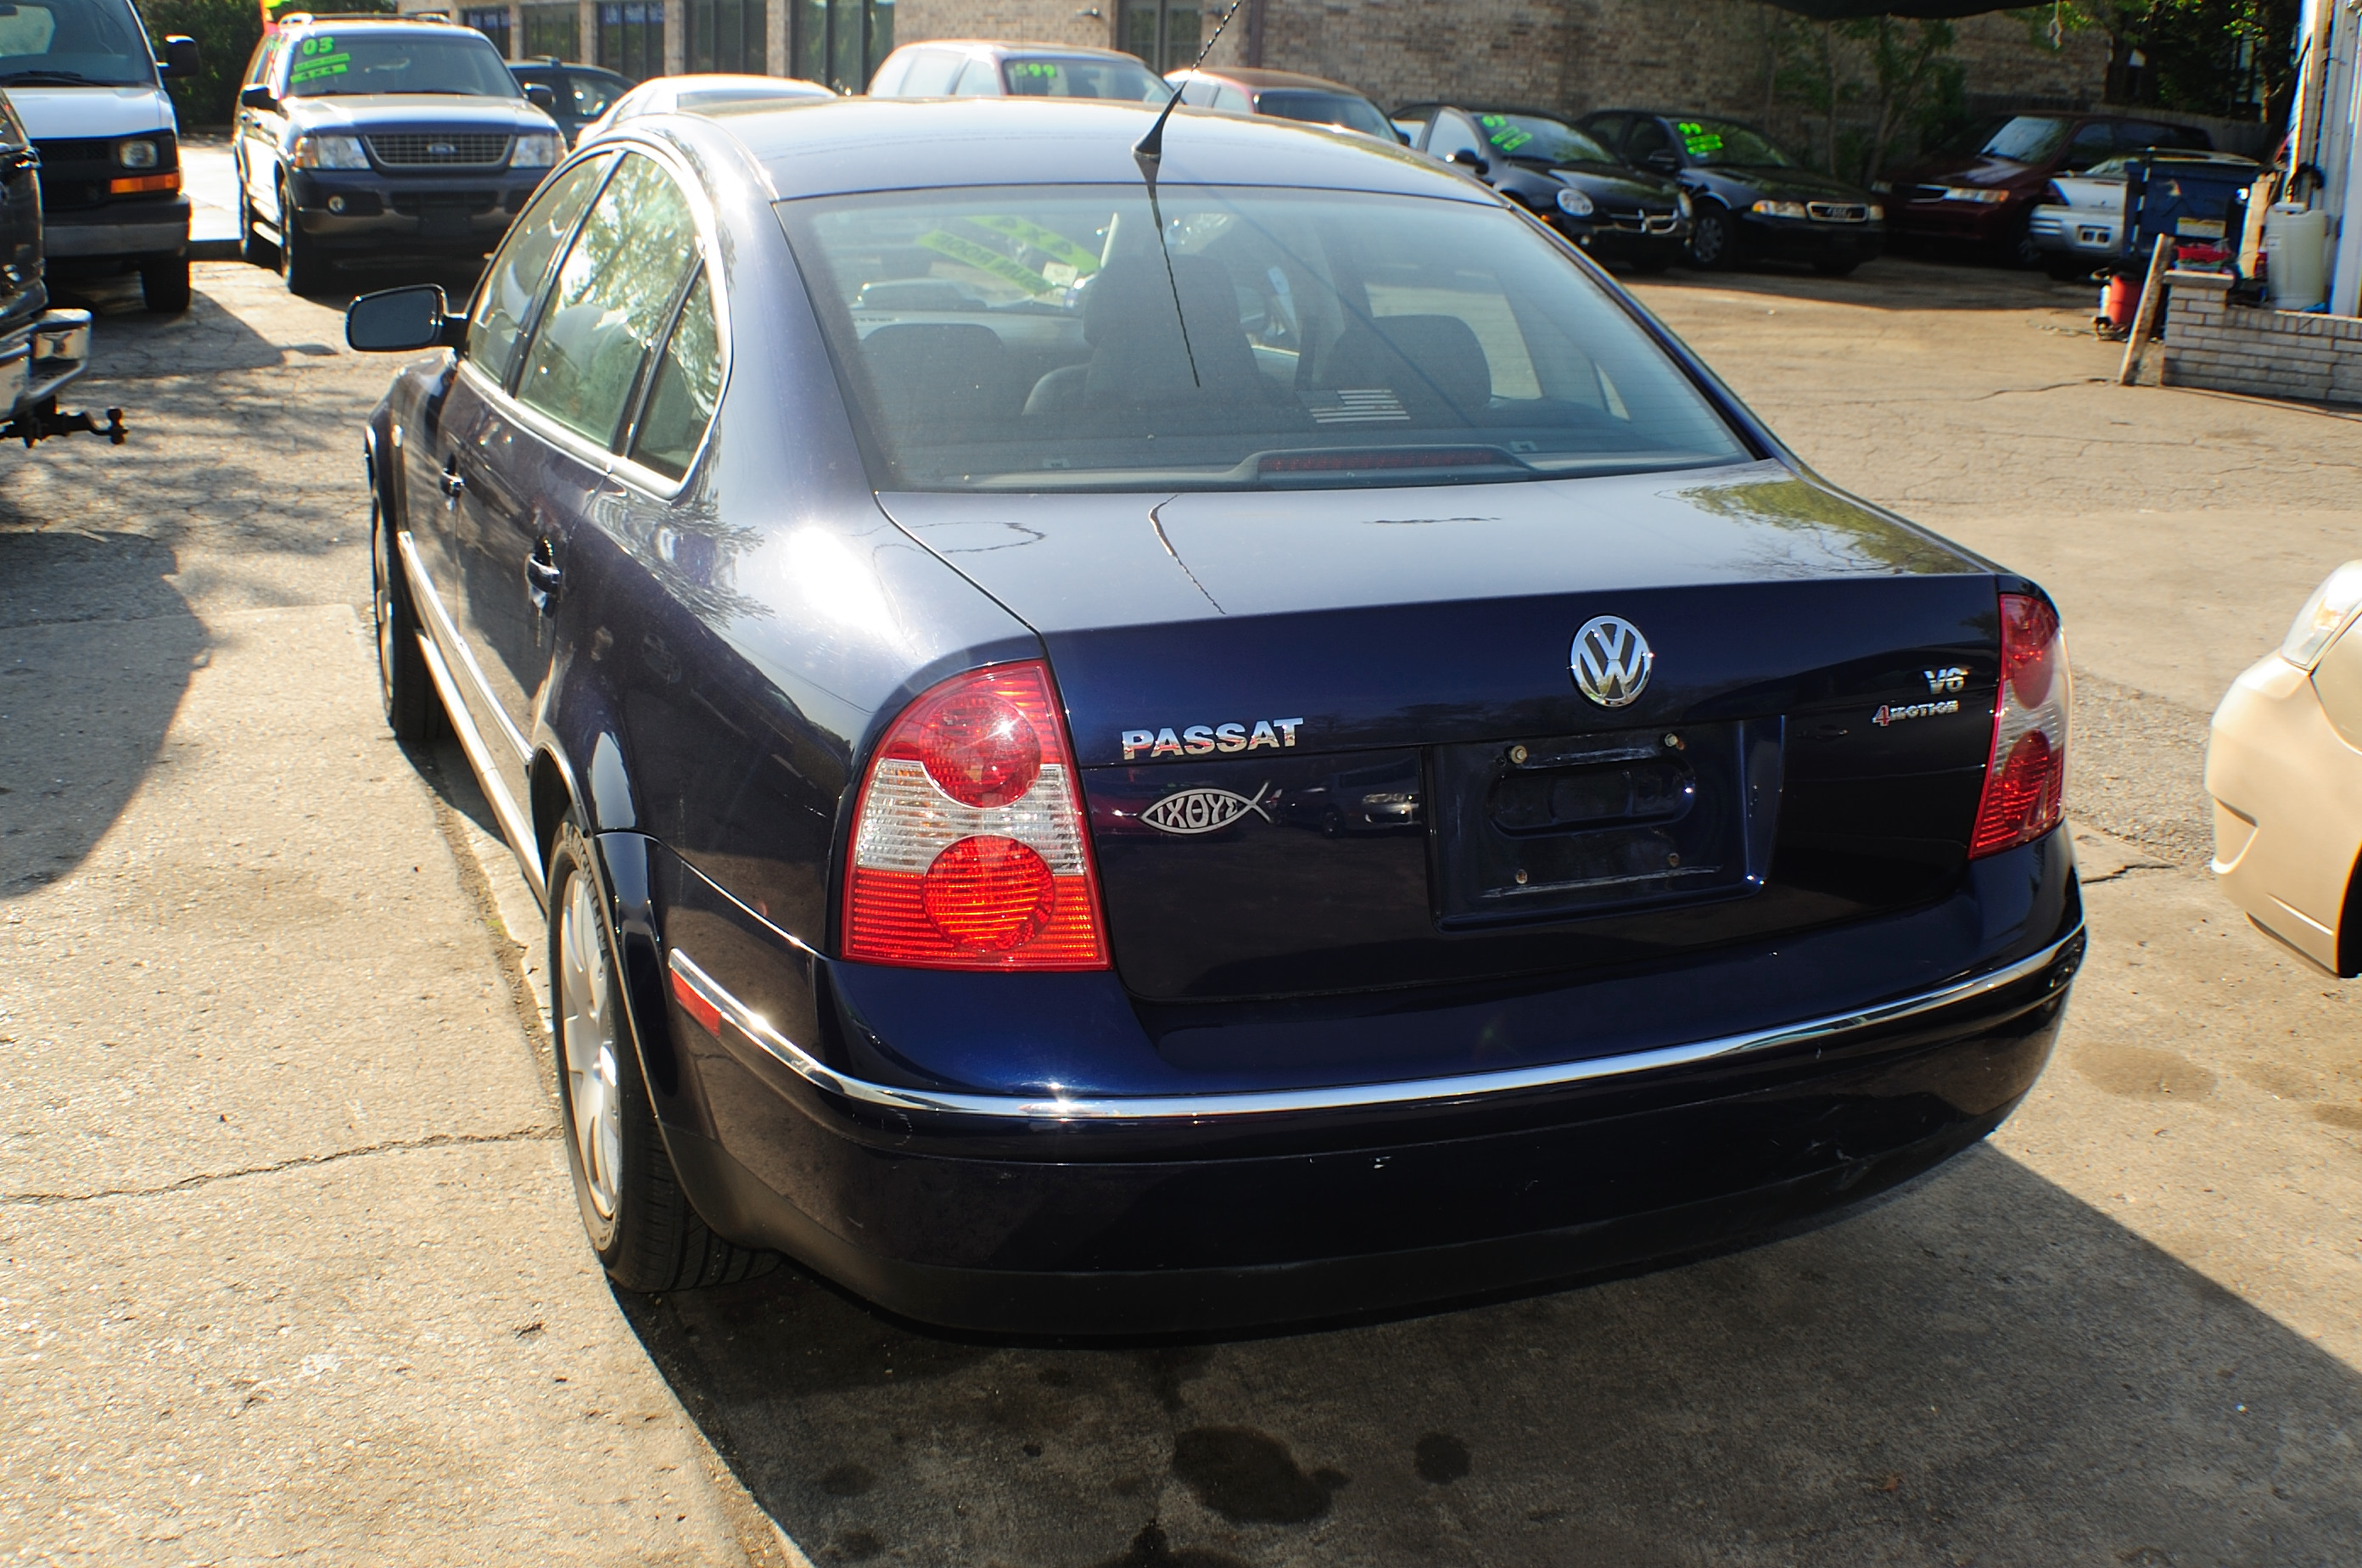 2001 Volkswagen Passat Blue Used Sedan car sale Gurnee Hanover Park Hoffman Estates Lombard